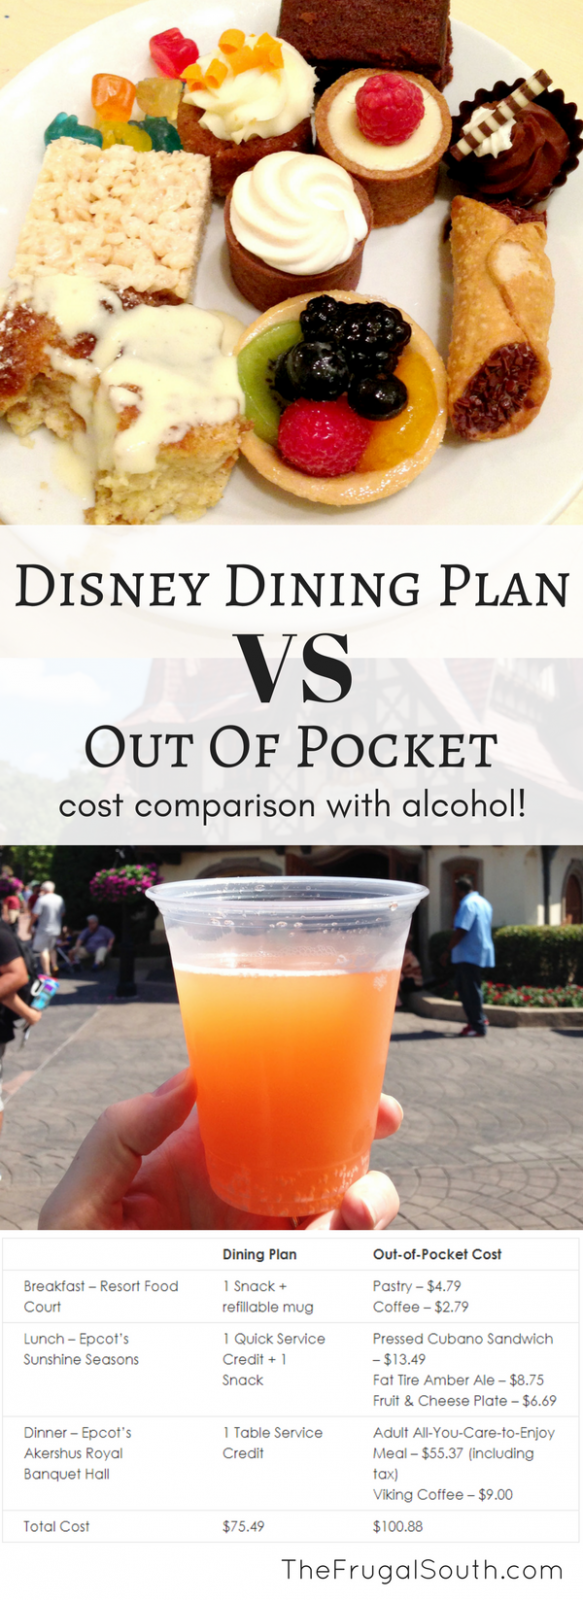 Will The New Disney Dining Plan With Alcohol Save You